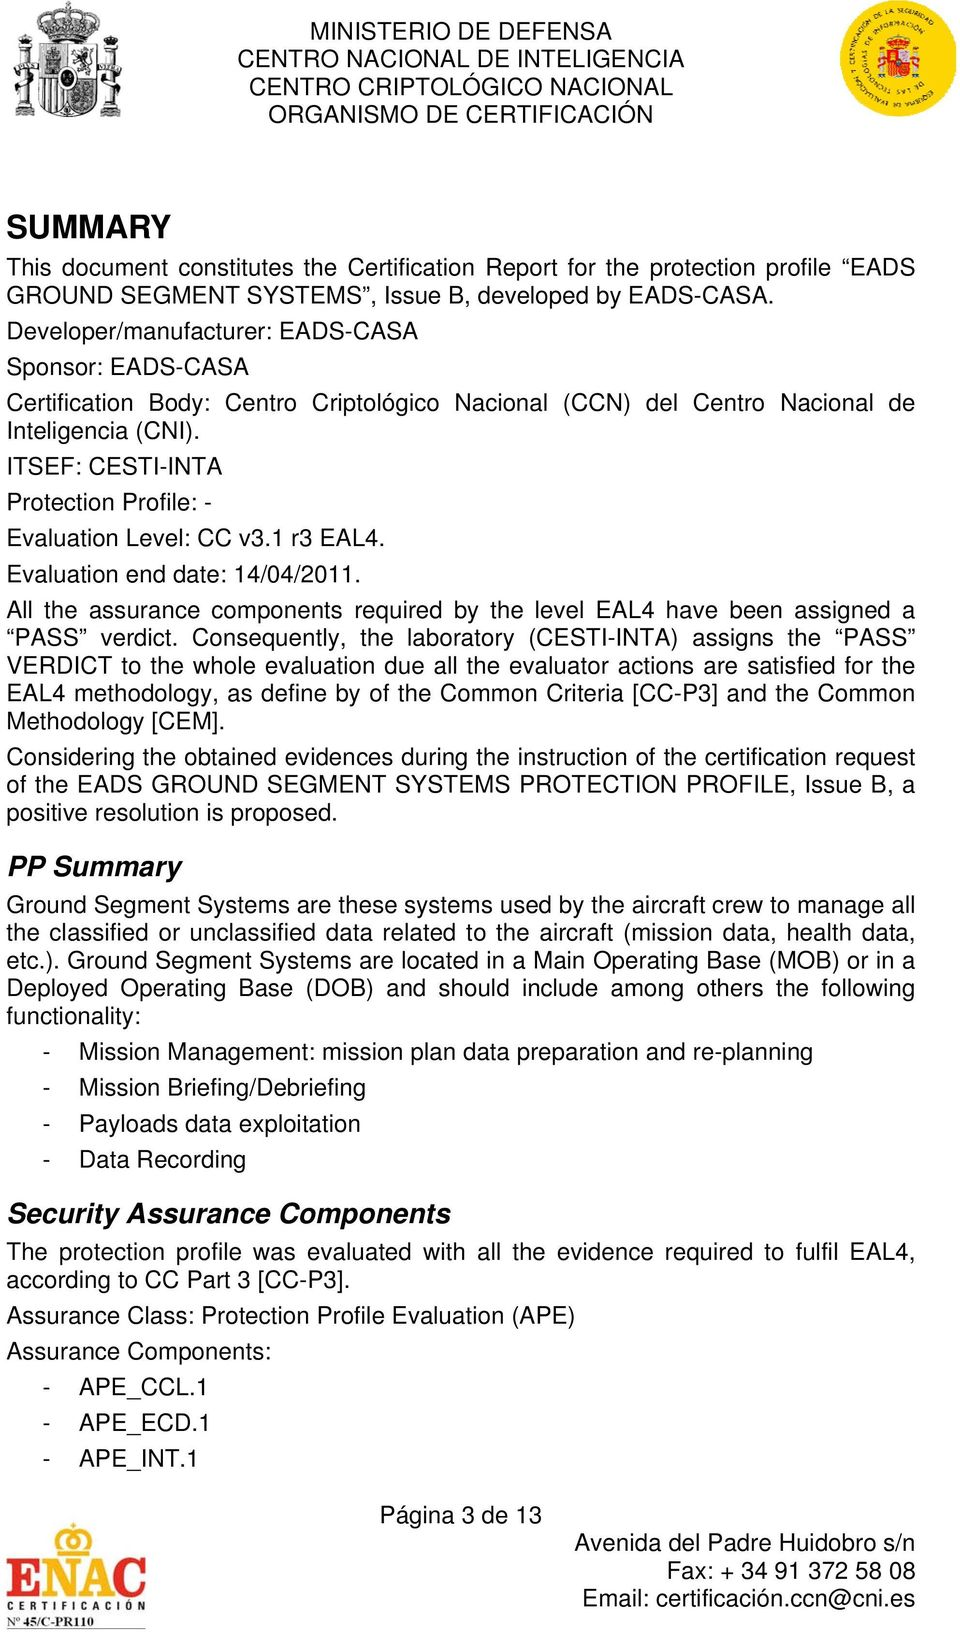 ITSEF: CESTI-INTA Protection Profile: - Evaluation Level: CC v3.1 r3 EAL4. Evaluation end date: 14/04/2011. All the assurance components required by the level EAL4 have been assigned a PASS verdict.